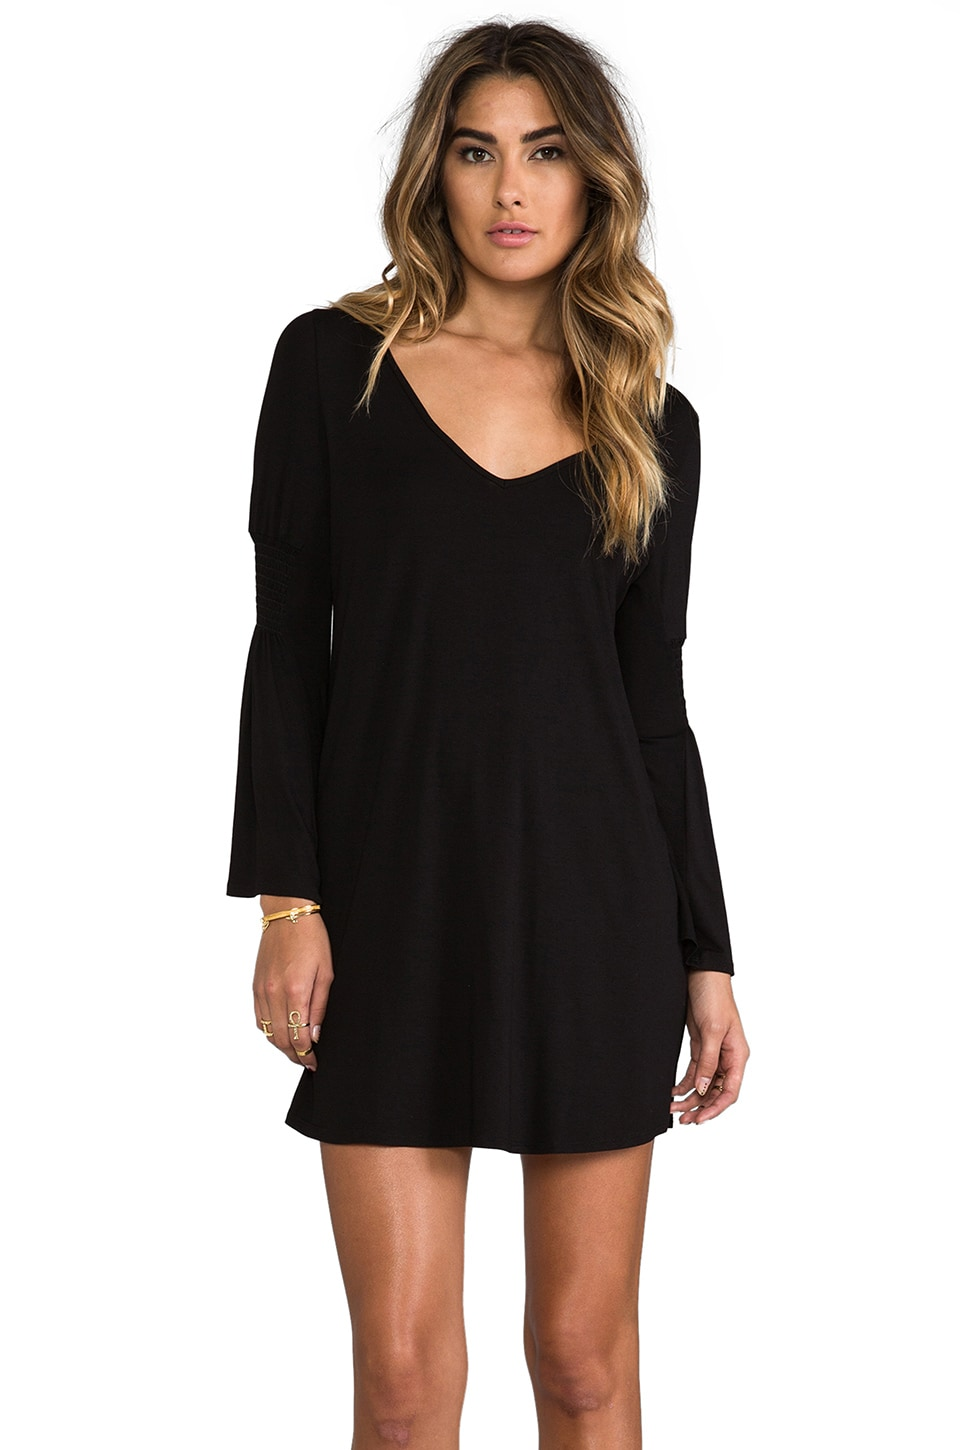 James & Joy Mallory Dress in Black